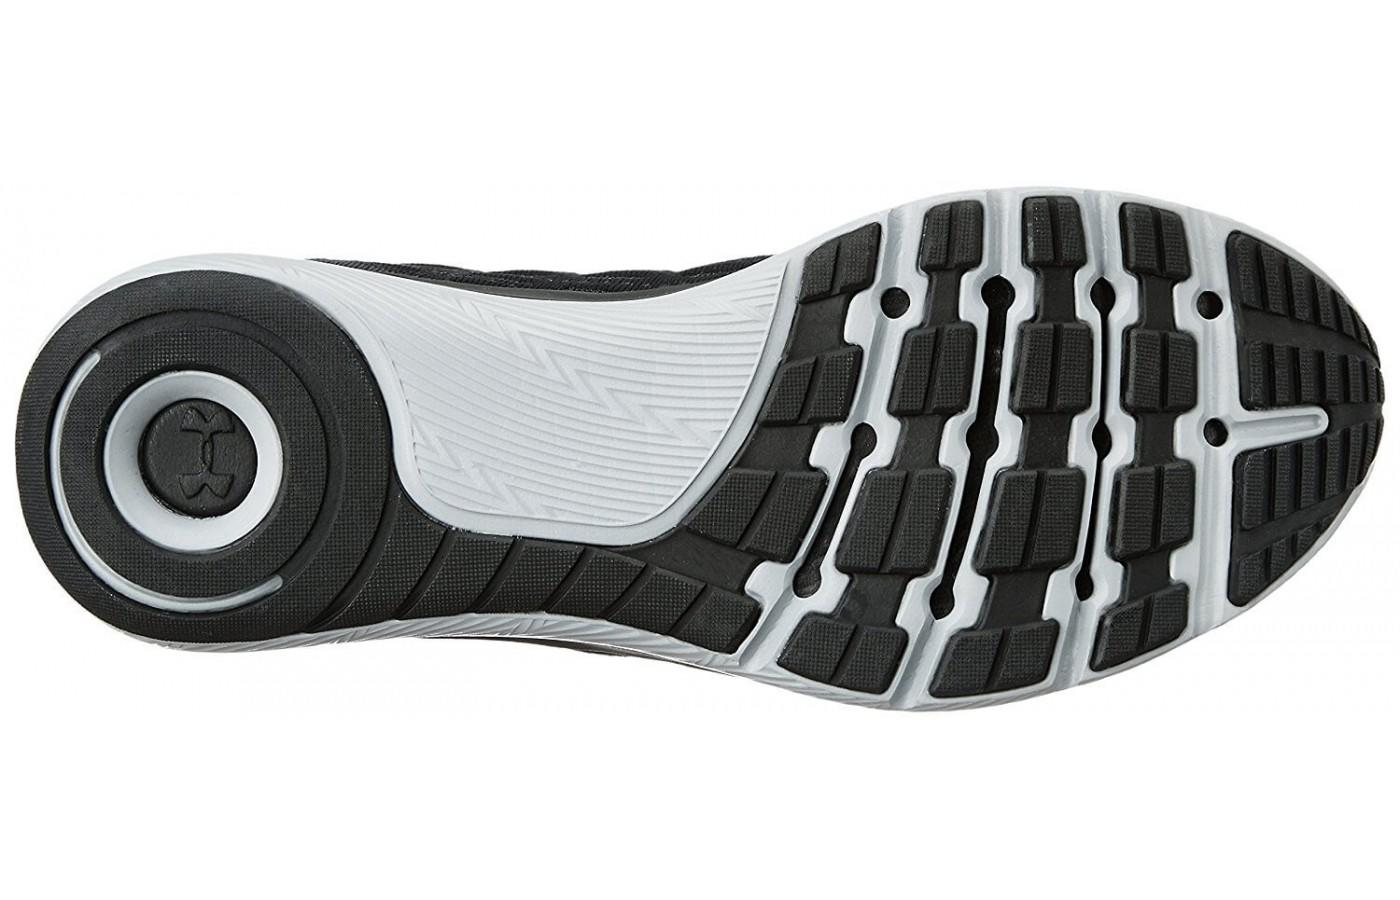 The Under Armour Threadborne Slingflex's outsole is lightweight and durable